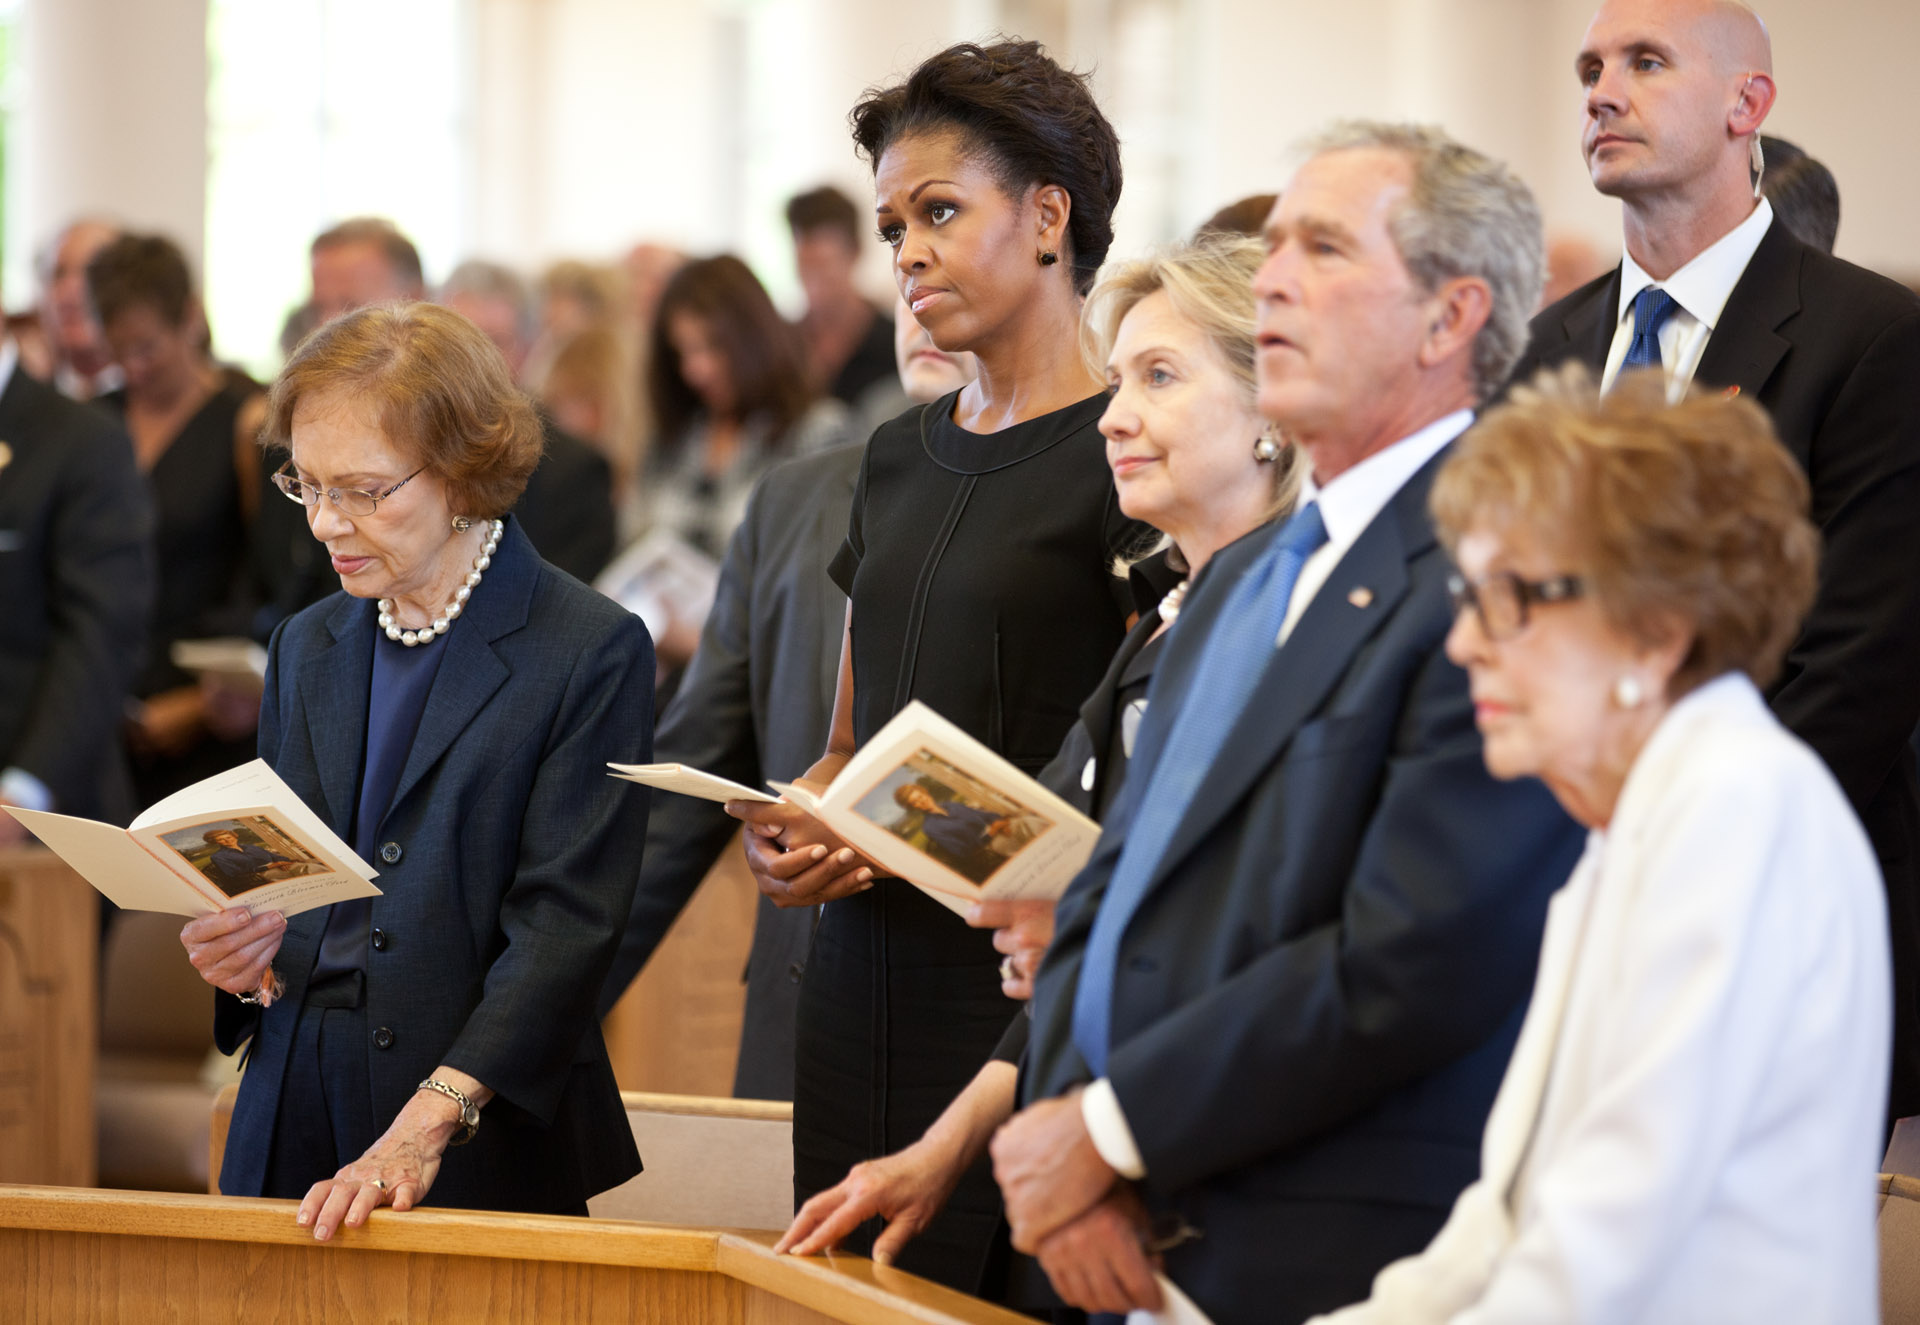 First Lady Michelle Obama Attends Funeral for Former First Lady Betty Ford